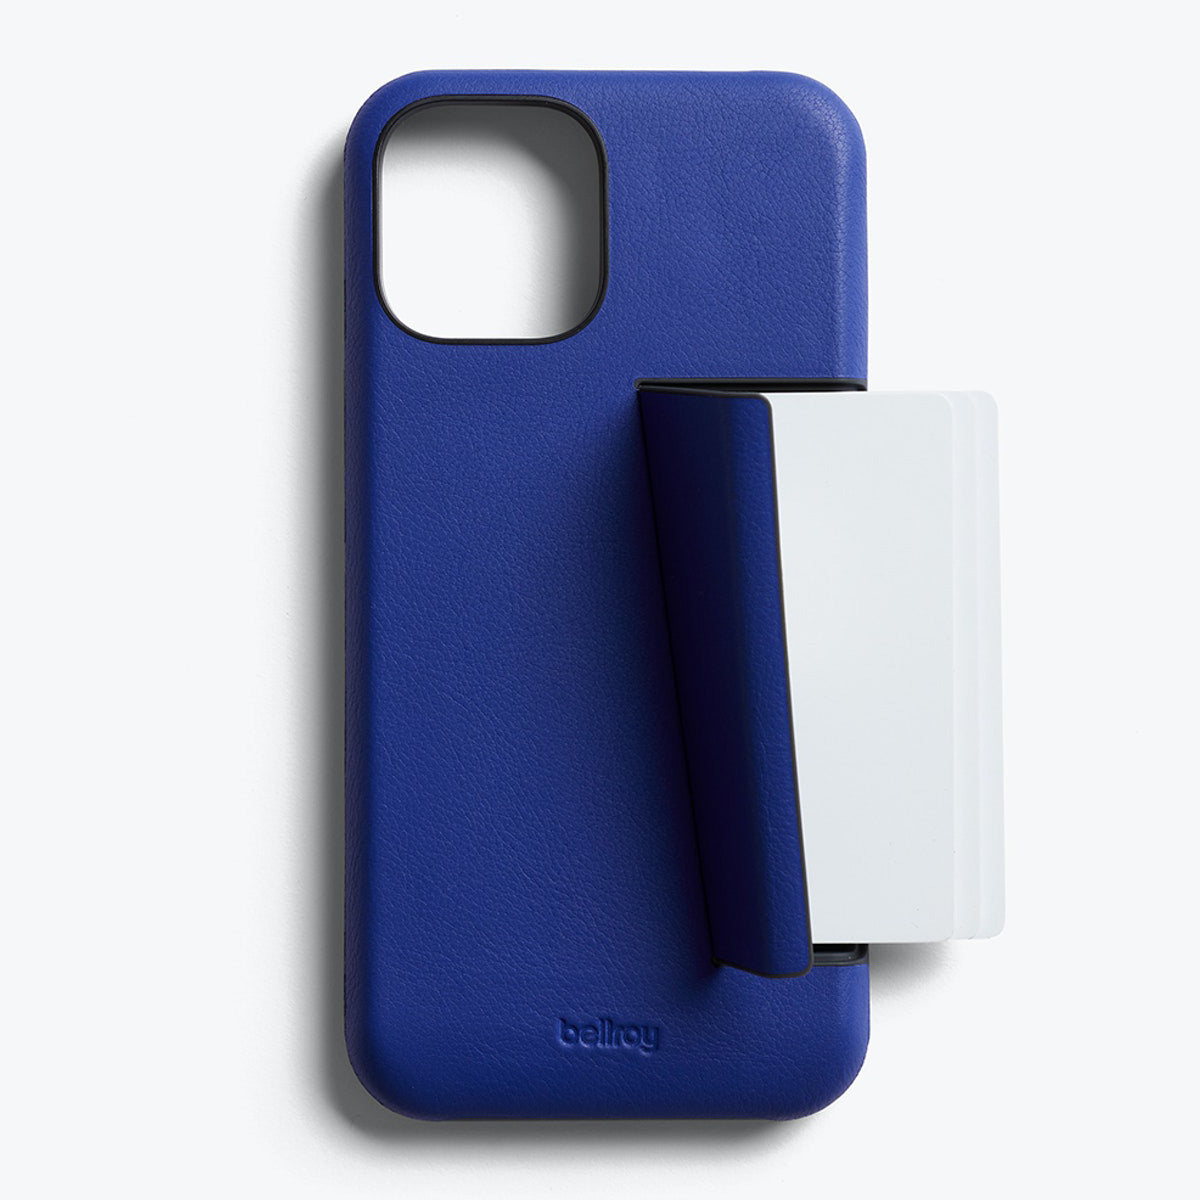 Bellroy 3-Card Genuine Leather Wallet Case For iPhone iPhone 12 Pro Max - COBALT